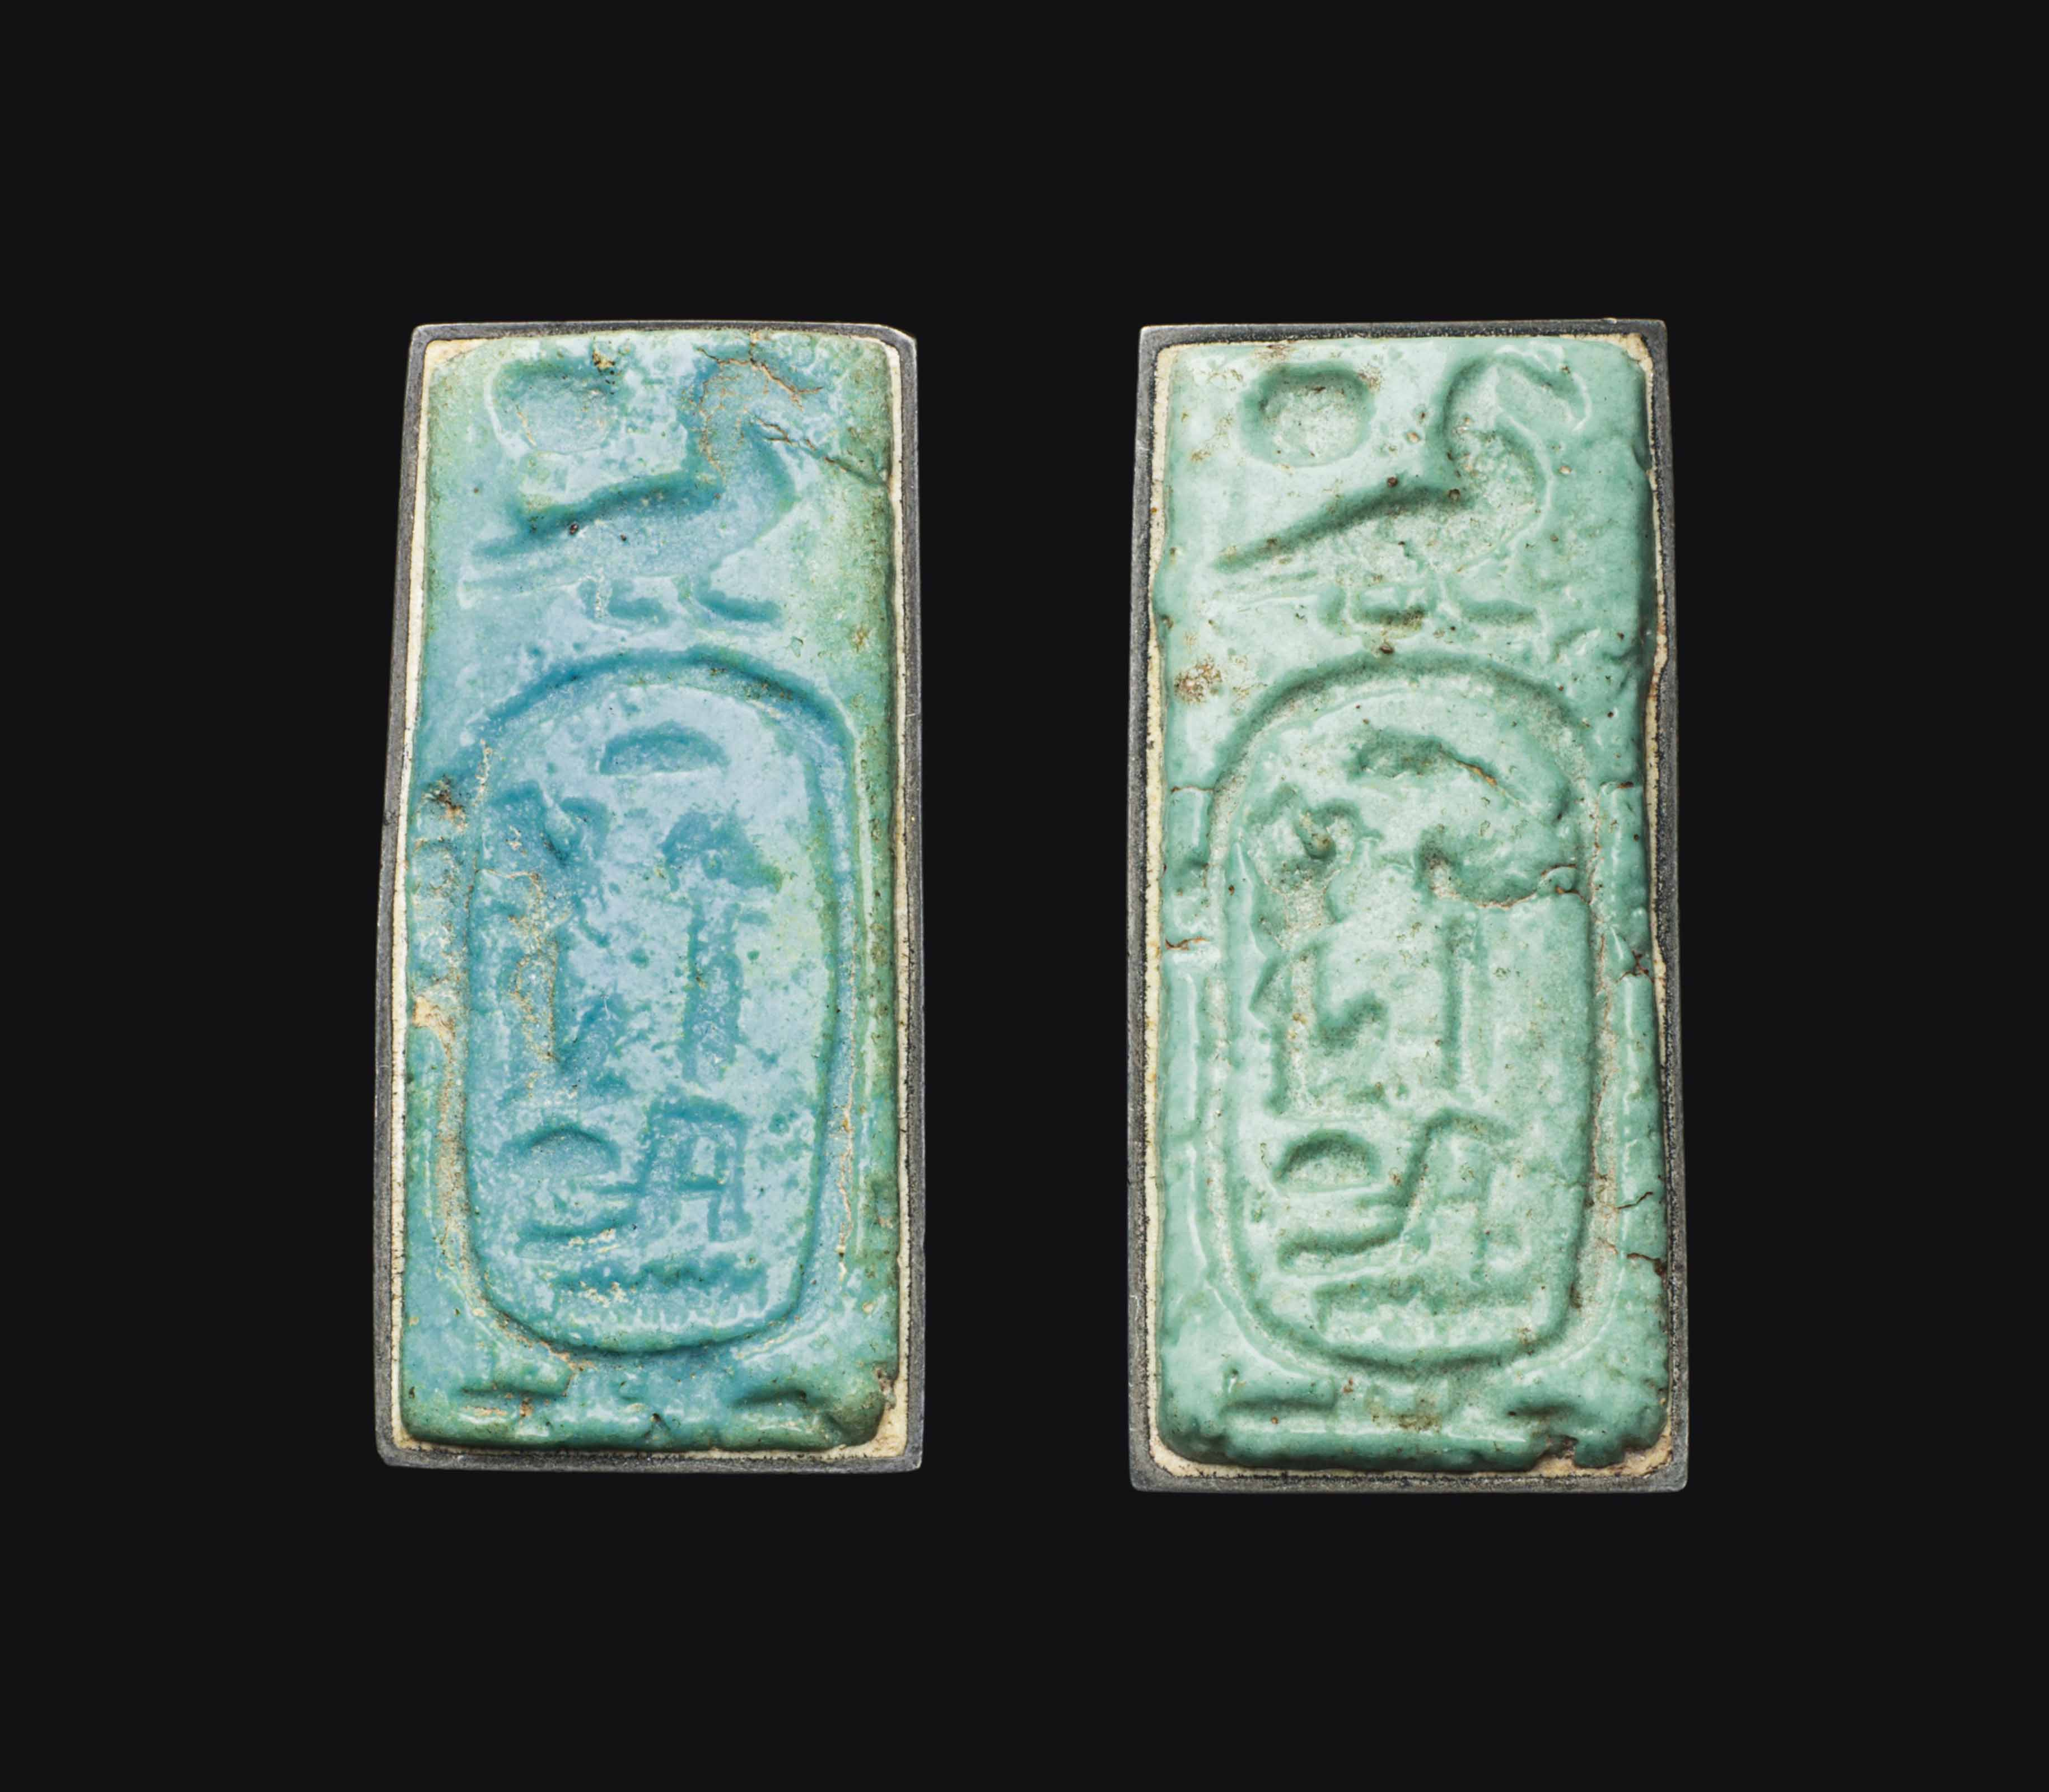 TWO EGYPTIAN FAIENCE PLAQUES